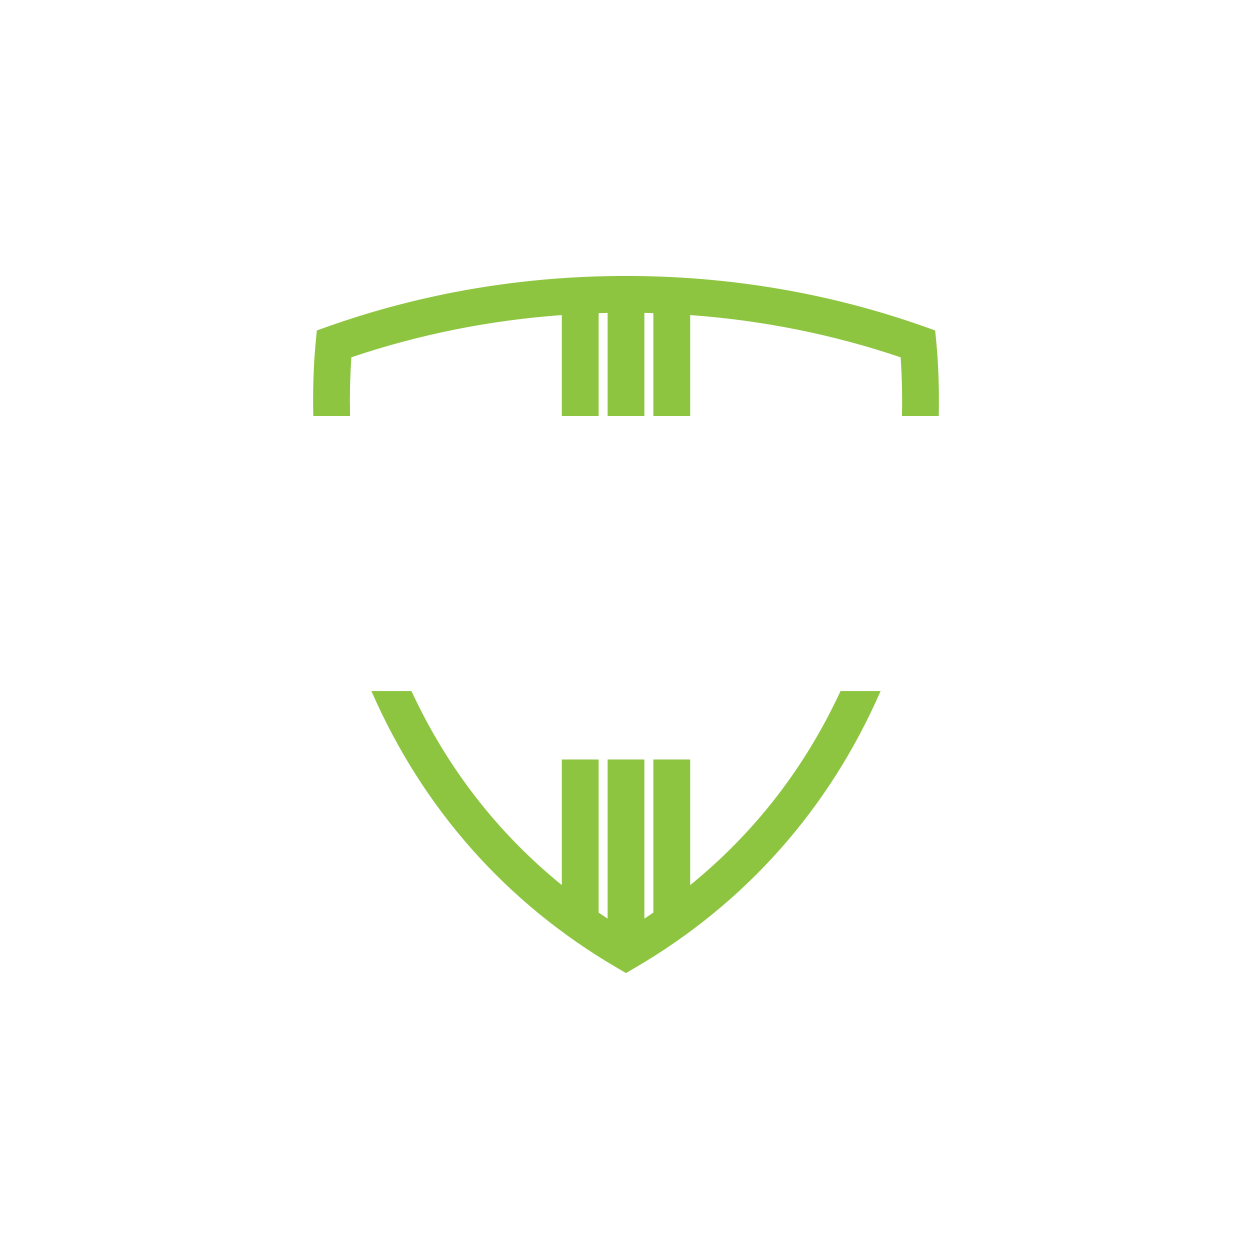 BeULTIMATE Sports